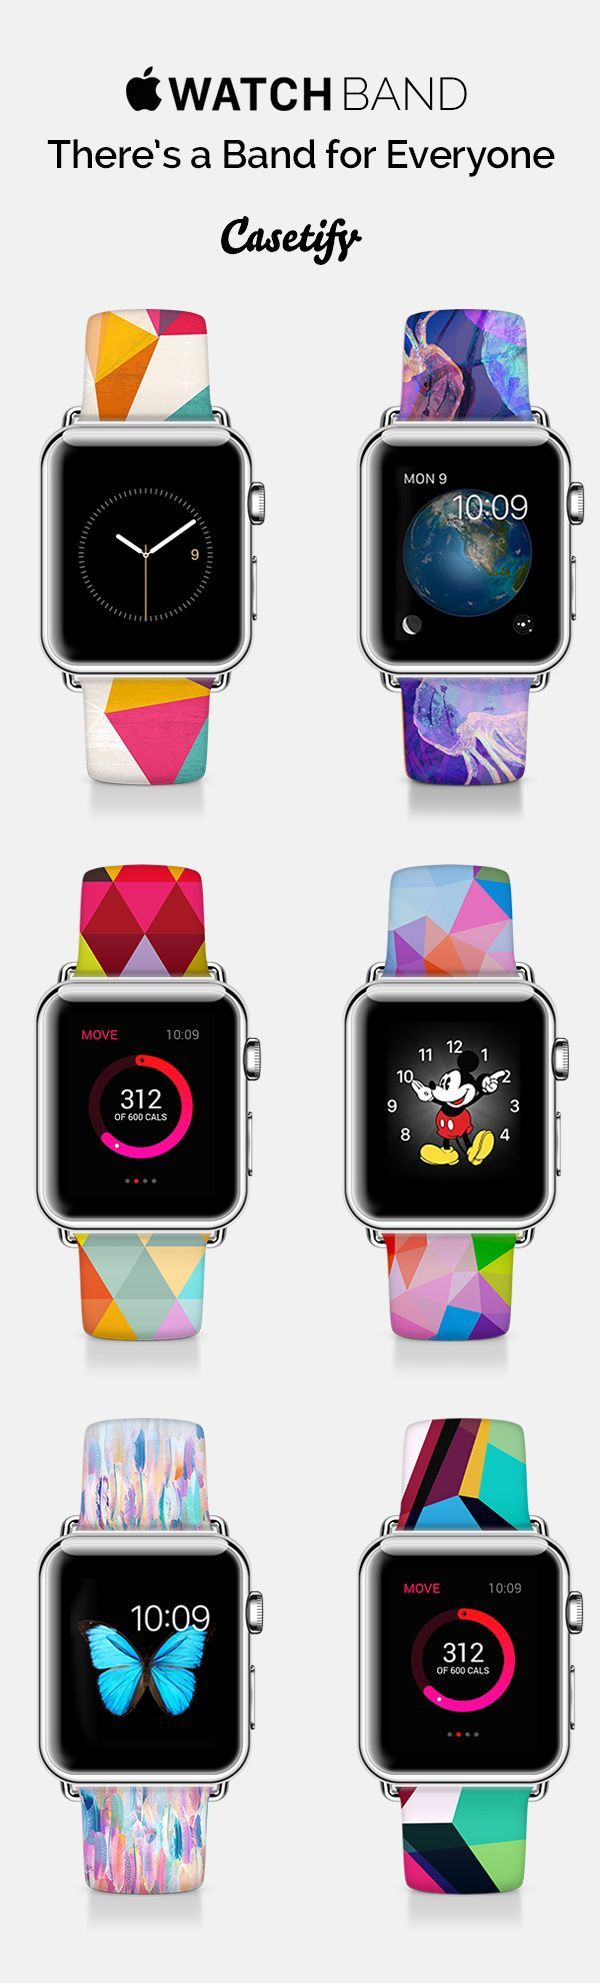 iWatch Band for everyone. You can customize your band or shop our Artist Collection!